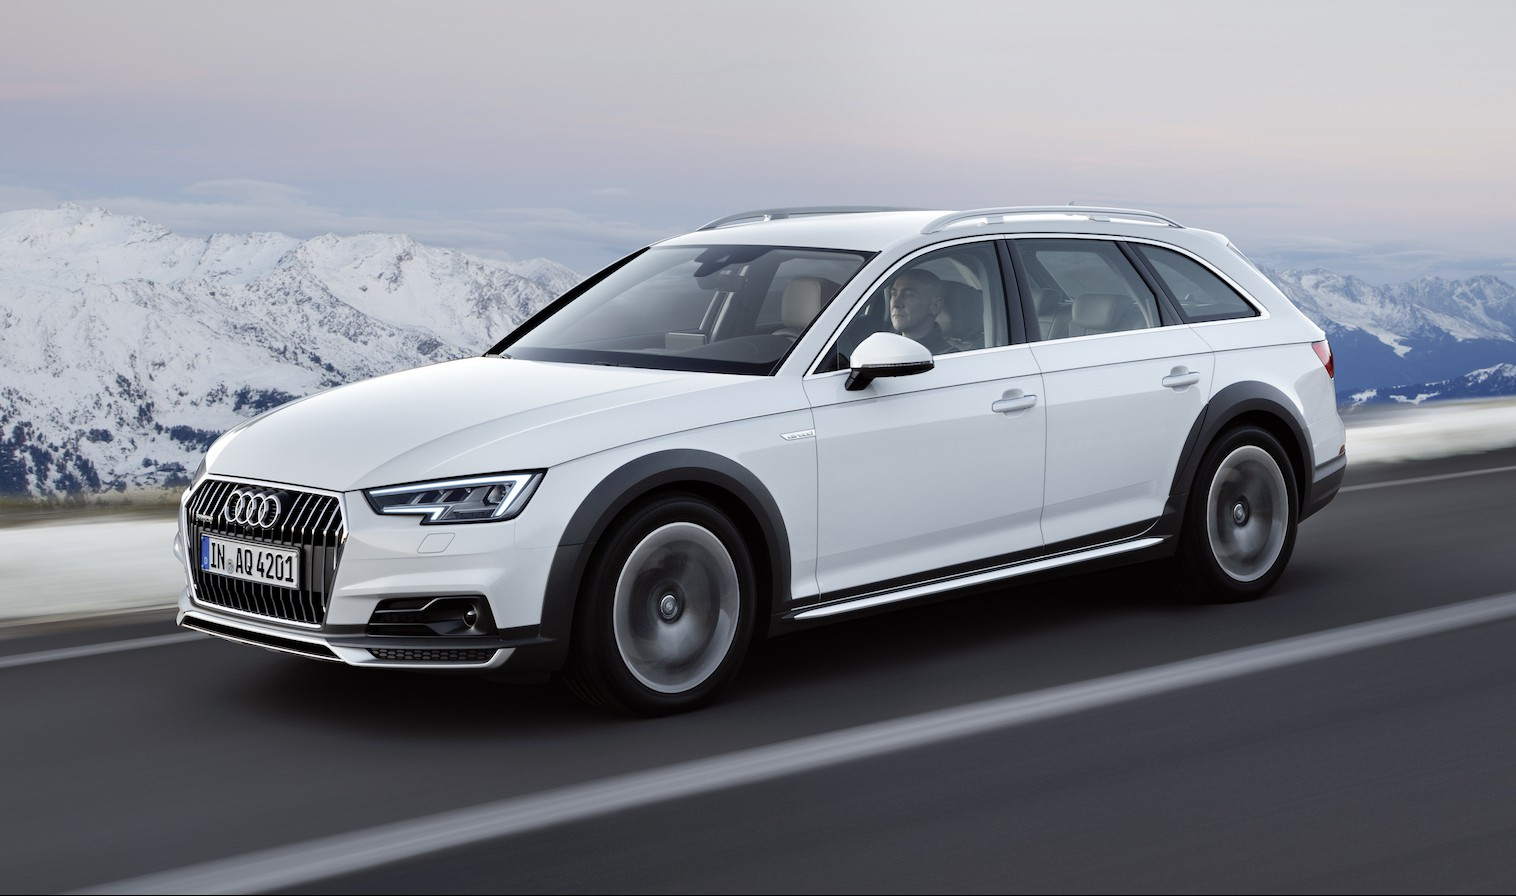 2017 Audi A4 Allroad Quattro Review Supercar